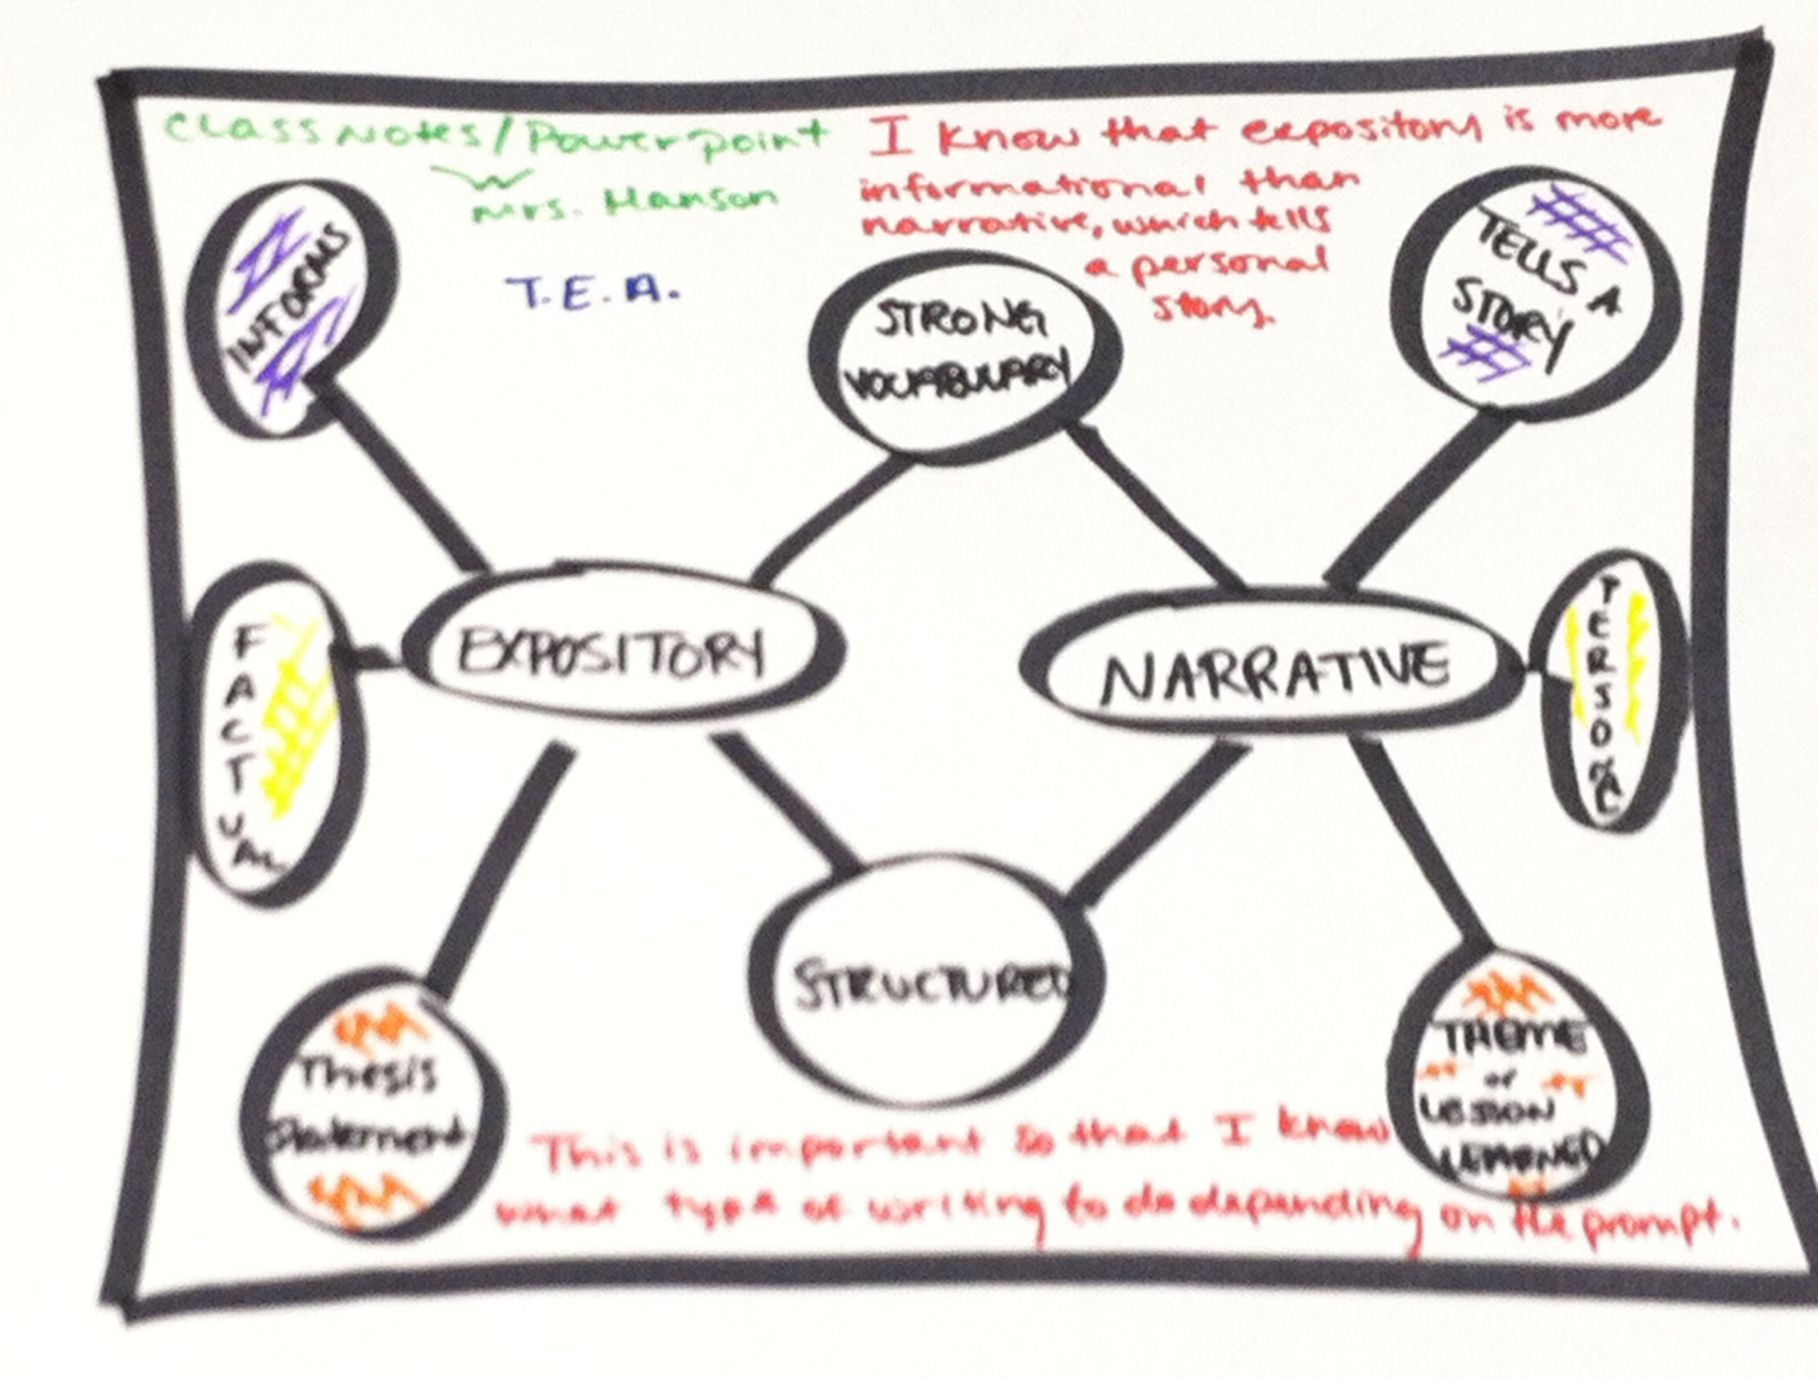 narrative vs expository essay Expository text vs narrative  personal narrative anchor chart - google search  narrative  narrative writing anchor chart-- visual, colorful, not too cluttered.